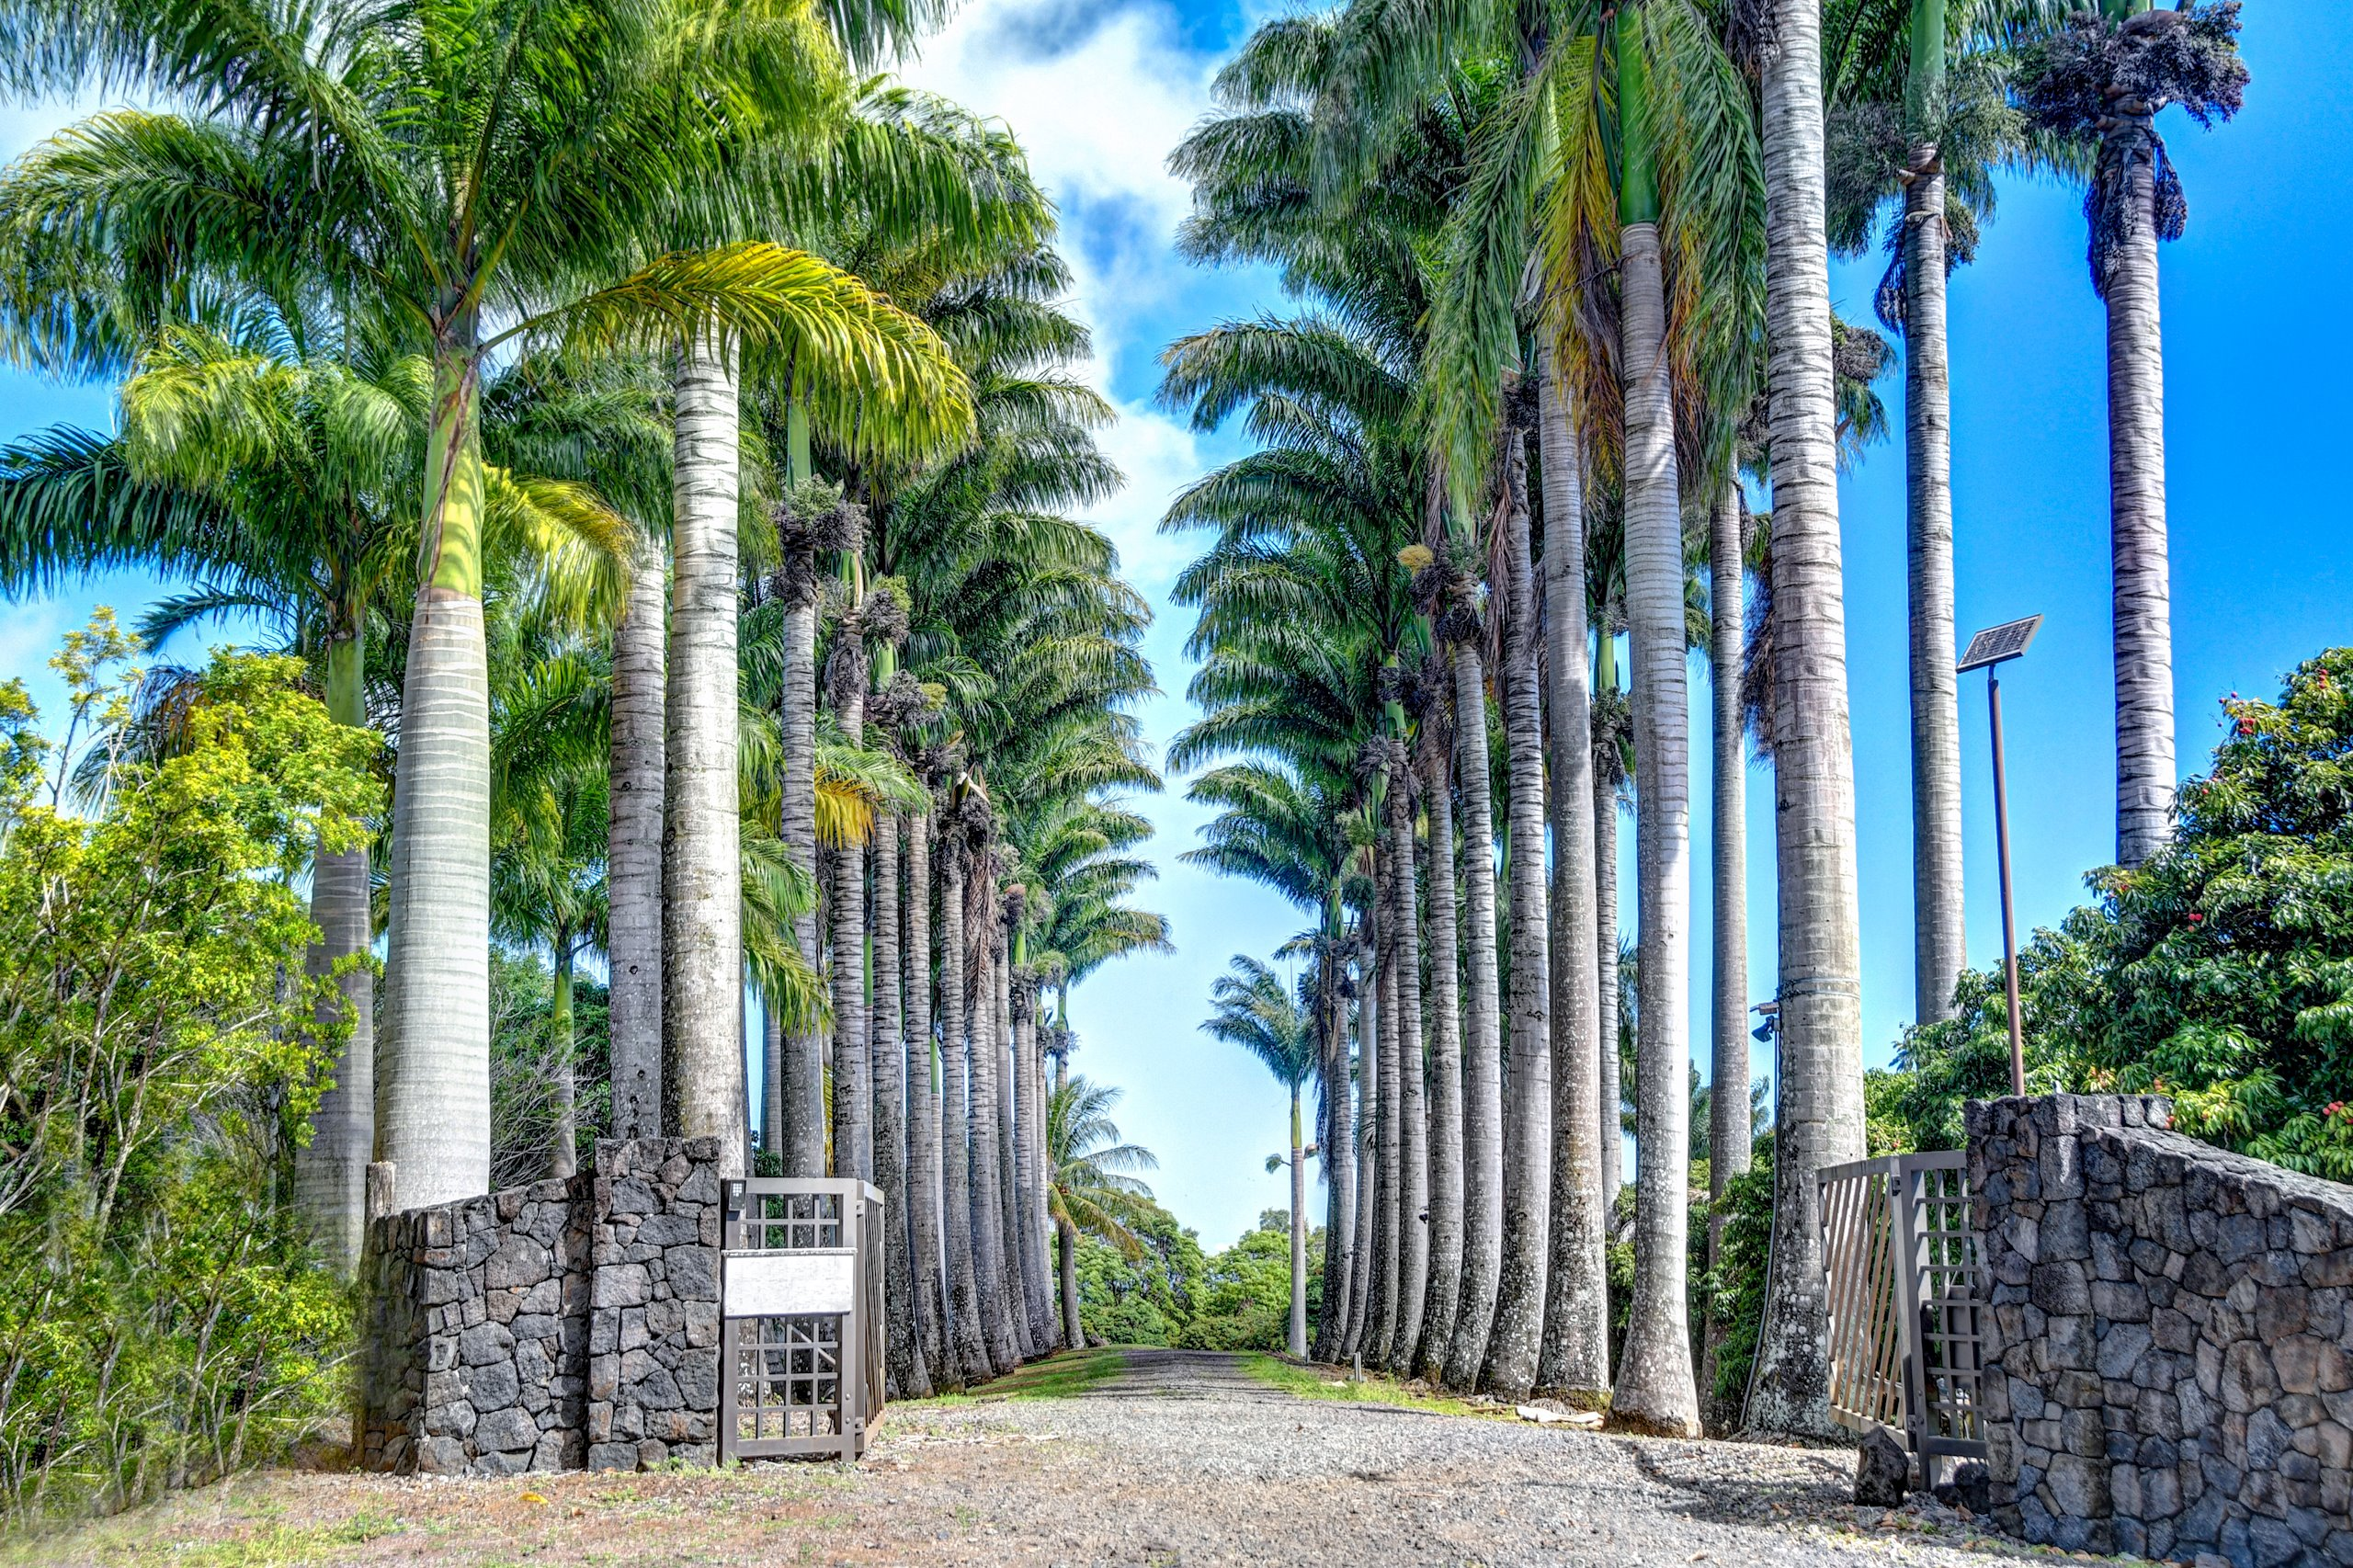 Enter through the gates of The Royal Palms Estate and you feel as if you are stepping back in time to an era of elegance and royal privilege.  The palm lined driveway is a botanical wonder and beckons you to venture beyond and experience the energy and majesty of the mature 50+ foot Royal palms. More luxury than you might imagine lies within this gate. This 12.8-acre property located on the lush Hamakua coast of the Big Island was created to be a place where Hawaii and life exists beyond resorts and golf courses and provides you with a place where no one can find you if that is what you want.  You will retreat within this private estate with unexpected upscale amenities for your comfort and pleasure.  The main house consists of approx. 3,936 sqft. with four large master suites all with luxurious double size baths and each with a different theme and views of the ocean and gardens.  At the heart of the property is an oversized heated, custom designed infinity edge pool with a lava rock waterfall and a swim up bar with three underwater bar stools and a full back bar! The total open lanai and covered lounge area is approx. 3,760 sqft. of recreational space; larger than the house! Additionally, there is a one bedroom one bath pool house bringing total bedrooms and baths to 5/5.5. On the ocean side of the home is the spacious main living area, home theater, kitchen and dining room all with 180-degree views of the Pacific Ocean.  Watch the sunrise daily while enjoying the cool trades off the ocean side lanai.  The huge kitchen will delight with granite counters galore, newer appliances, and an open design. The landscaping is expansive with tropical foliage and abundantly producing fruit trees: coconuts, oranges, lemons, and starfruit. The farm itself produces over 10,000 pounds of lychee annually for income to offset maintenance.  On the property behind the main house you will discover a historic, 100-year old donkey barn dating back to the early sugarcane days.